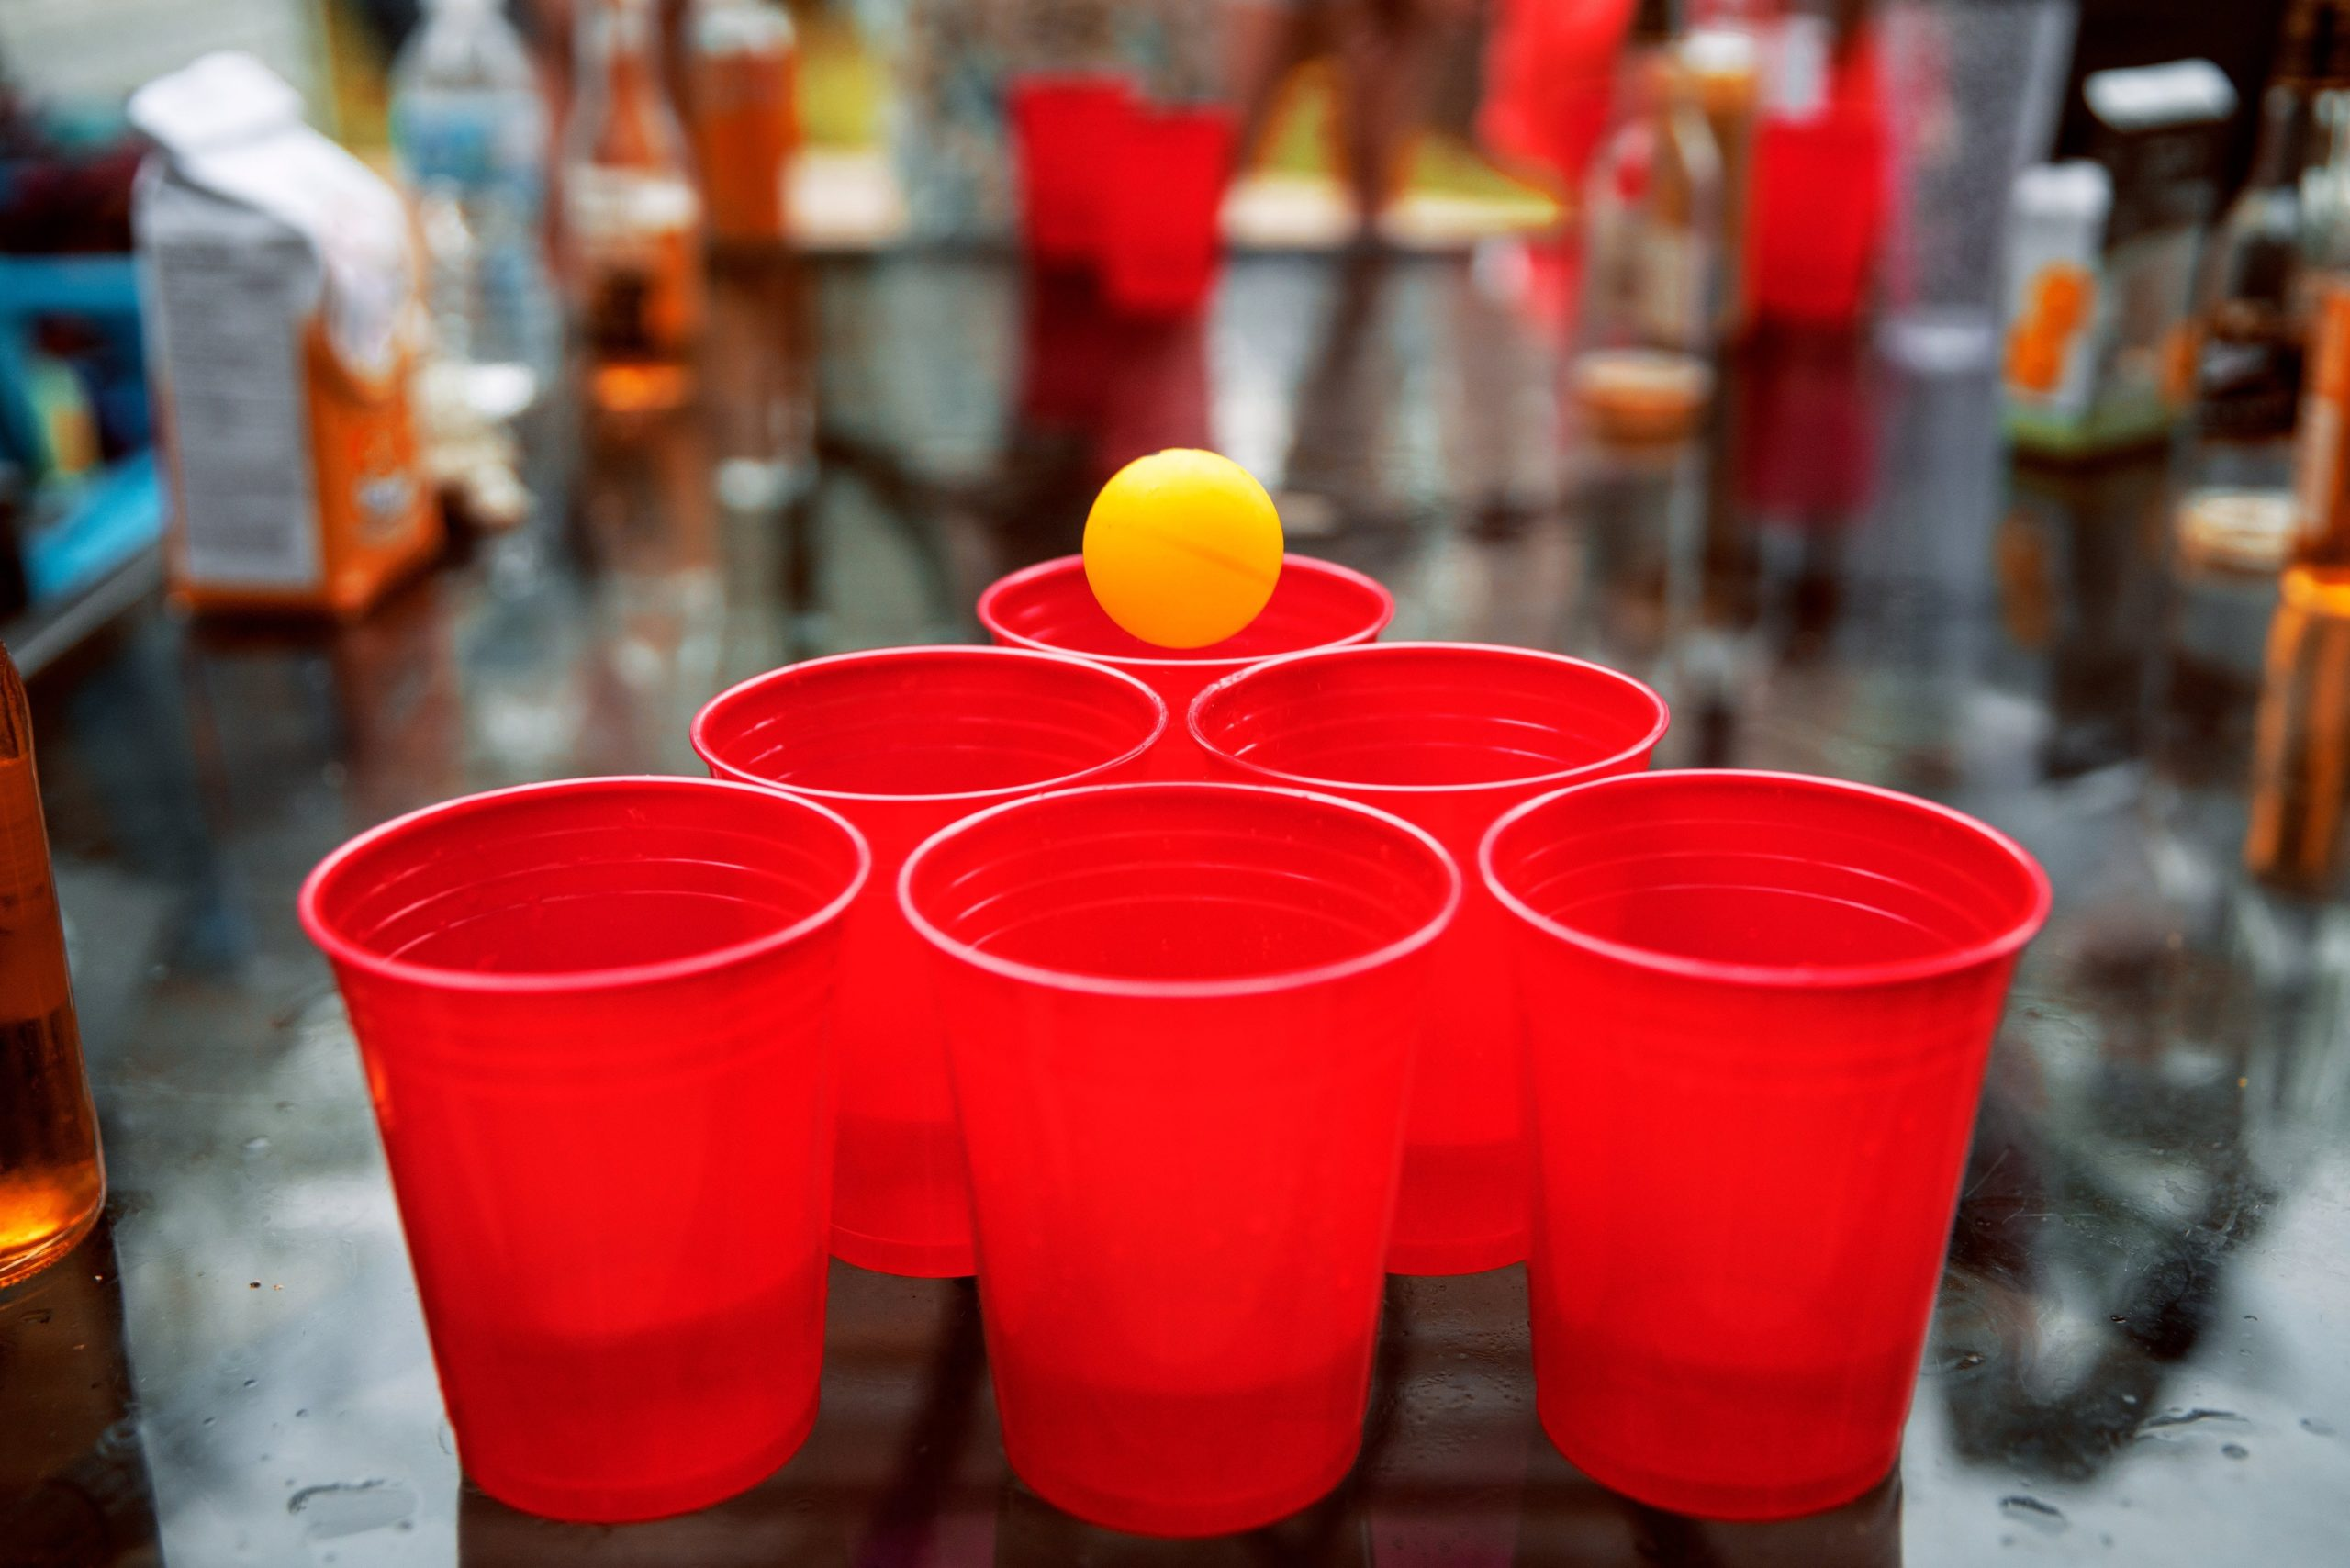 How to Play the Interesting Beer Pong Game?